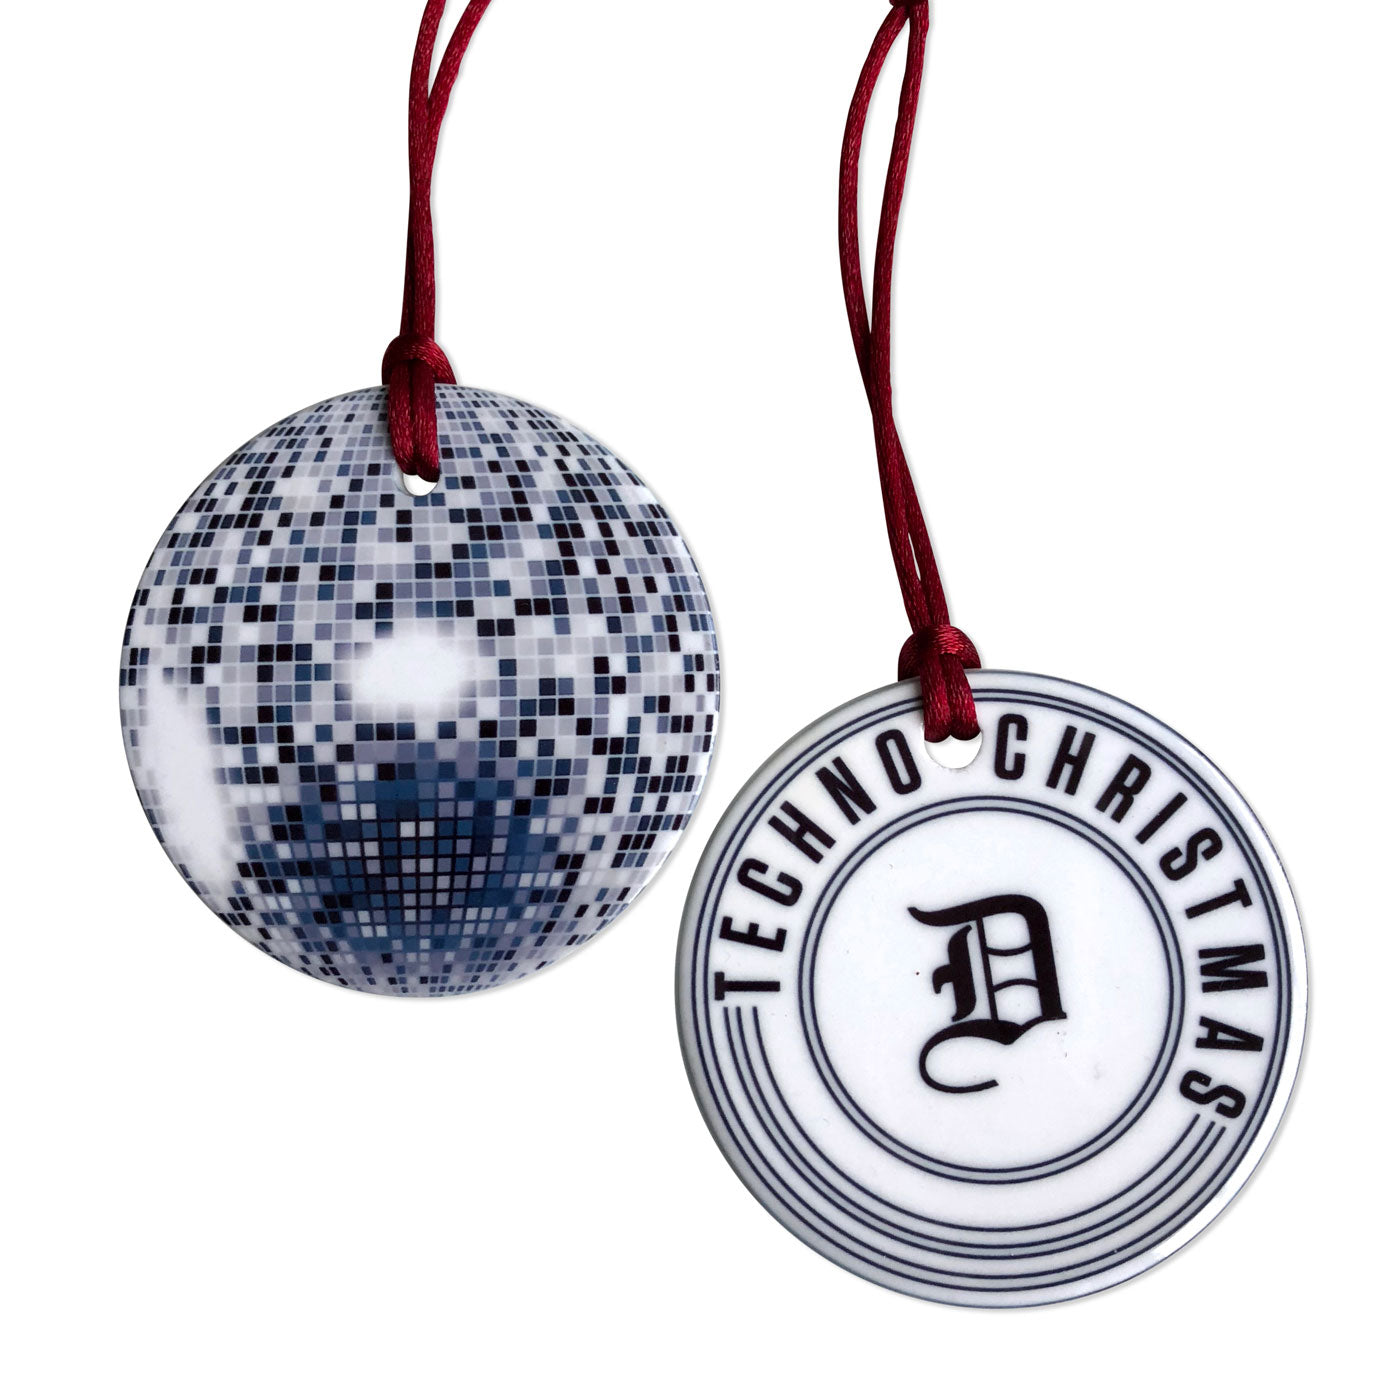 Christmas Disco Ball.Detroit Techno Christmas Ceramic Disco Ball Ornament Well Done Goods By Cyberoptix